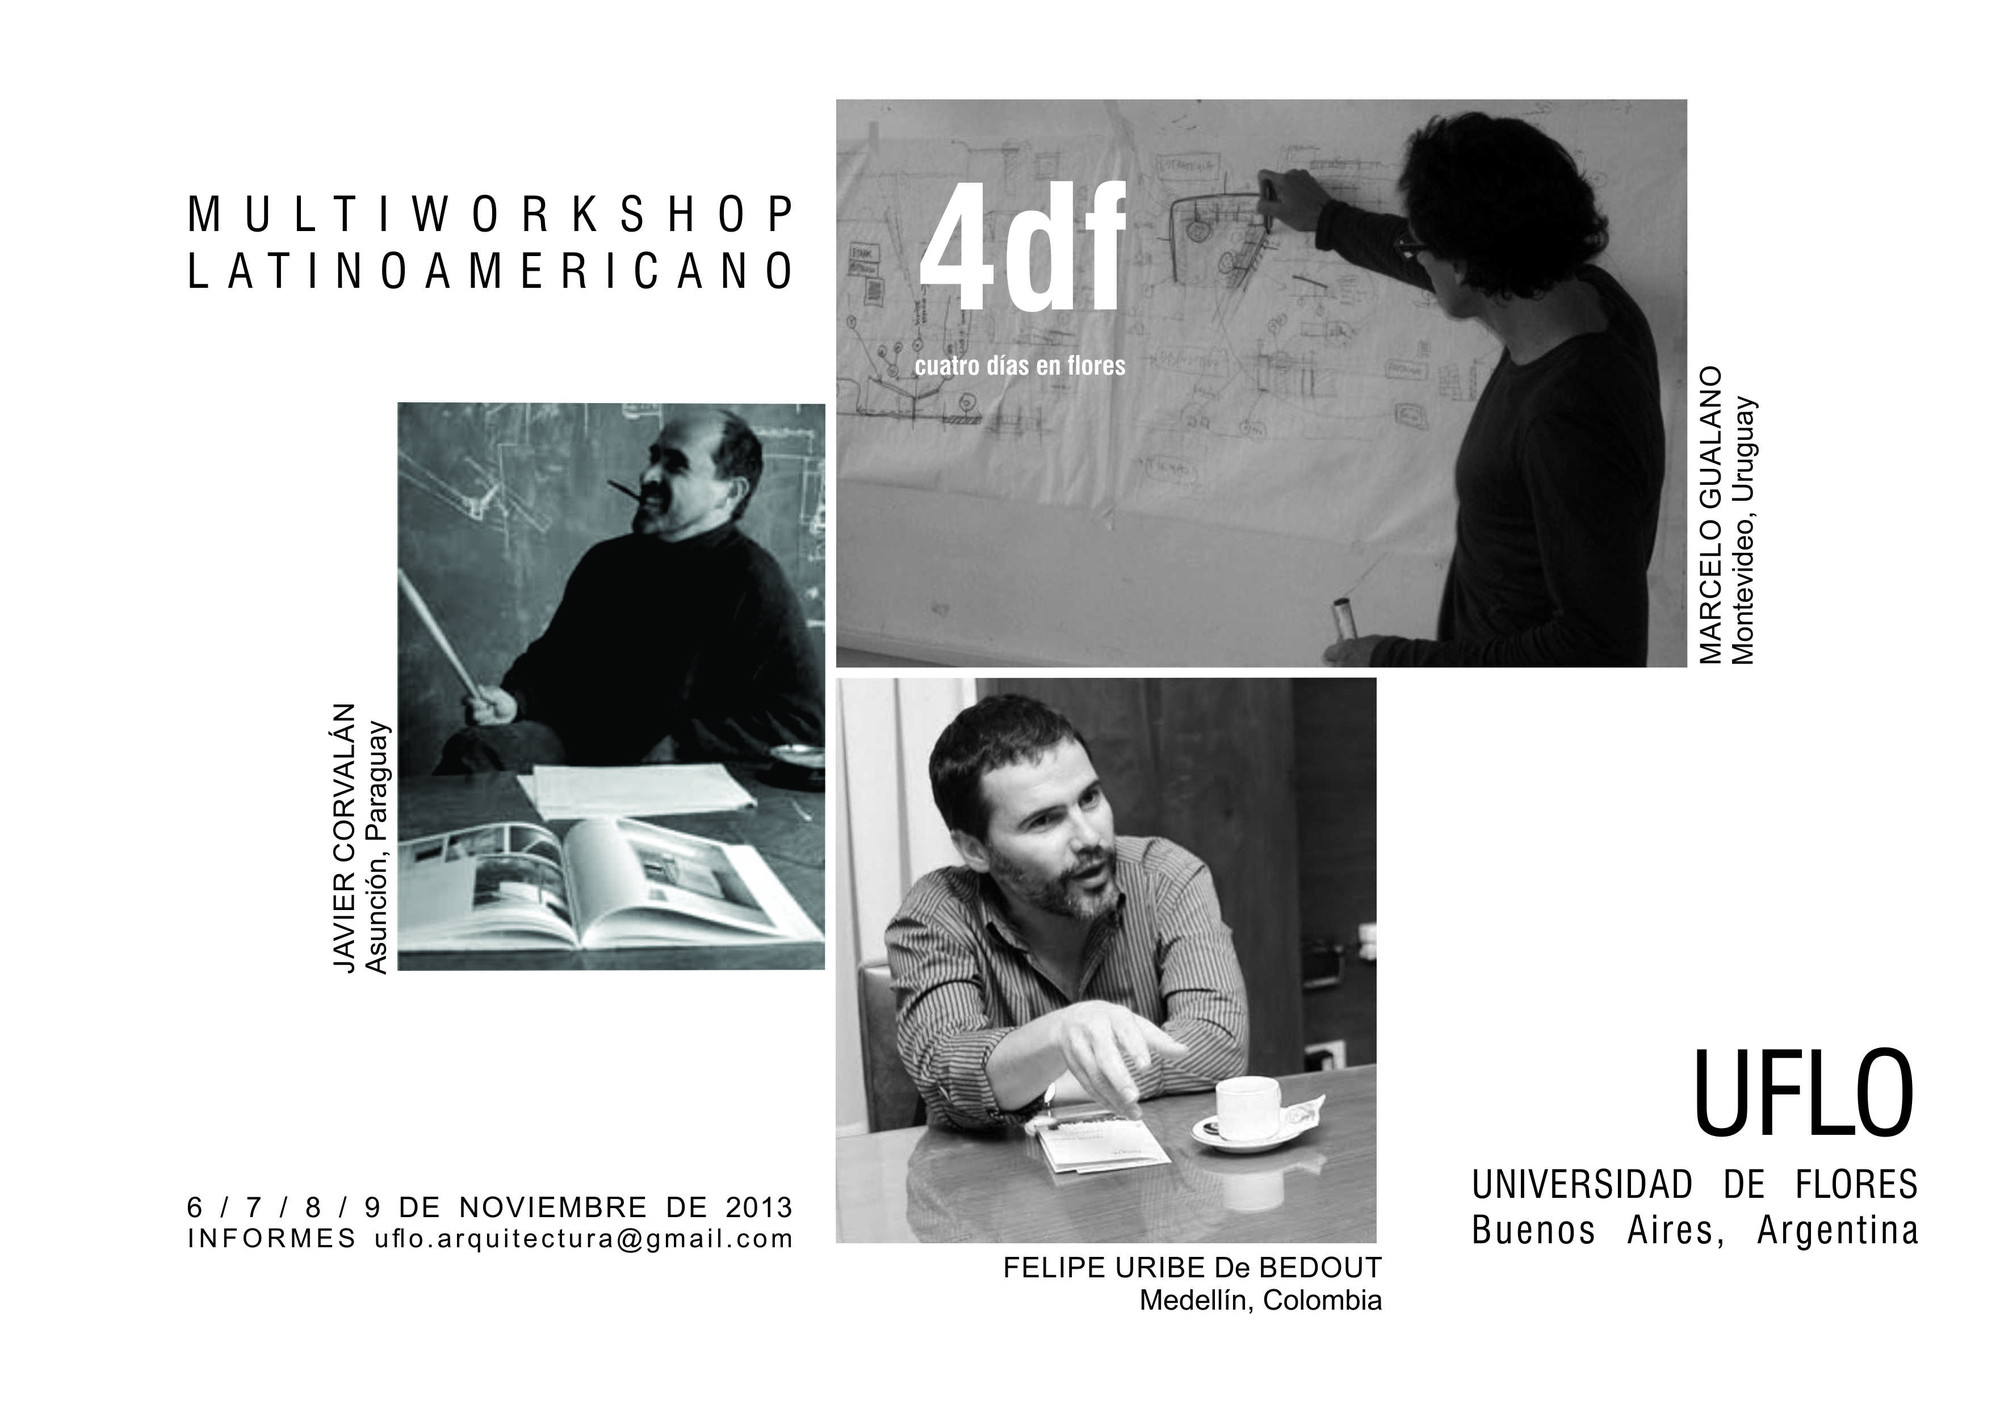 4 Días en Flores - Multiworkshop Latinoamericano, Courtesy of Universidad de Flores